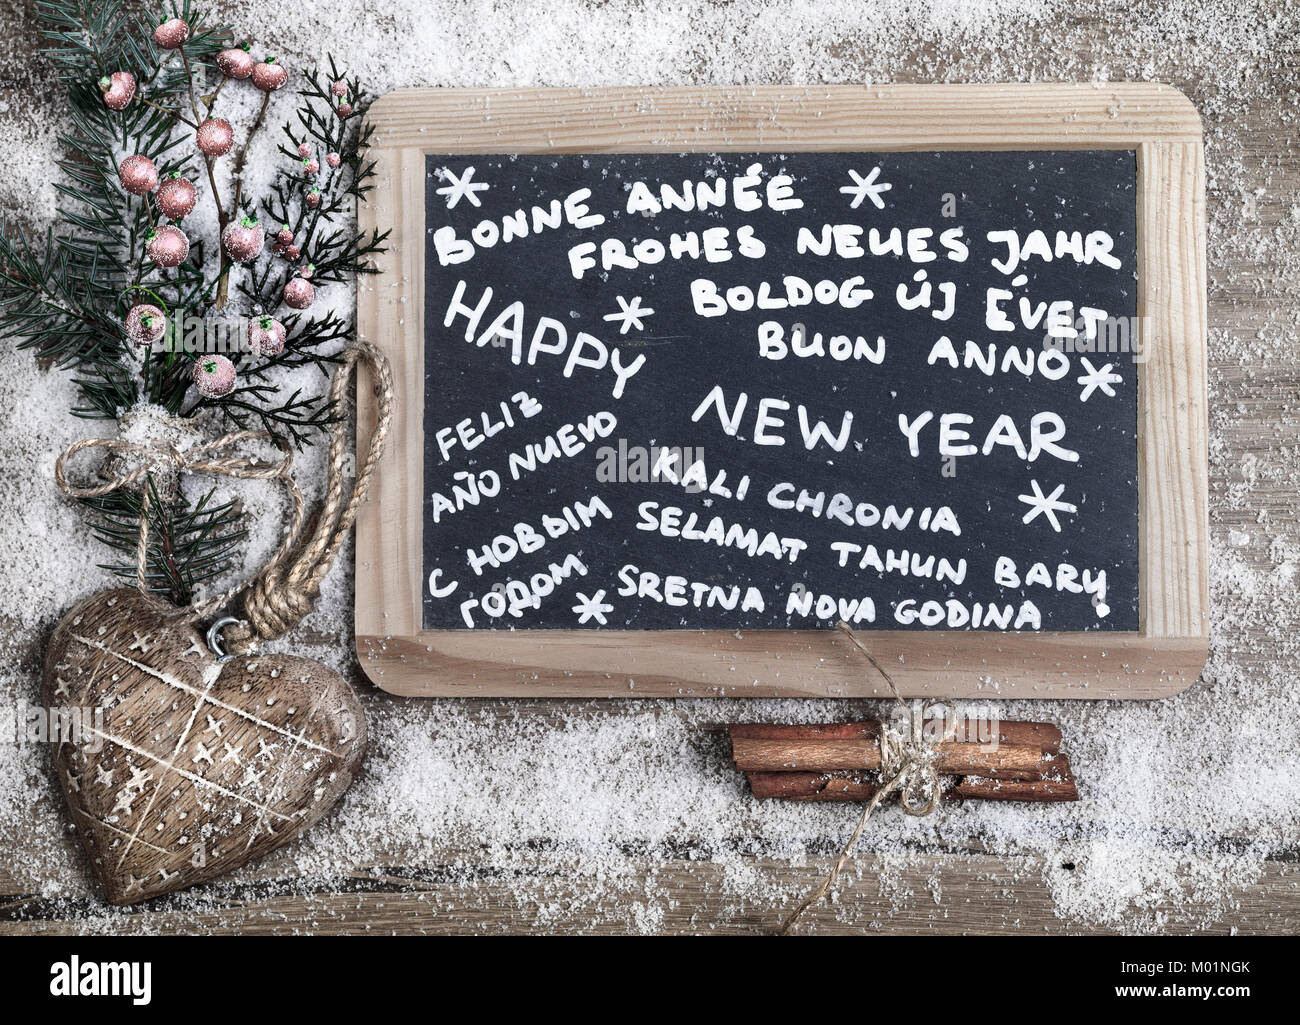 'Happy new year' in different languages written on a chalkboard with winter decorations - Stock Image